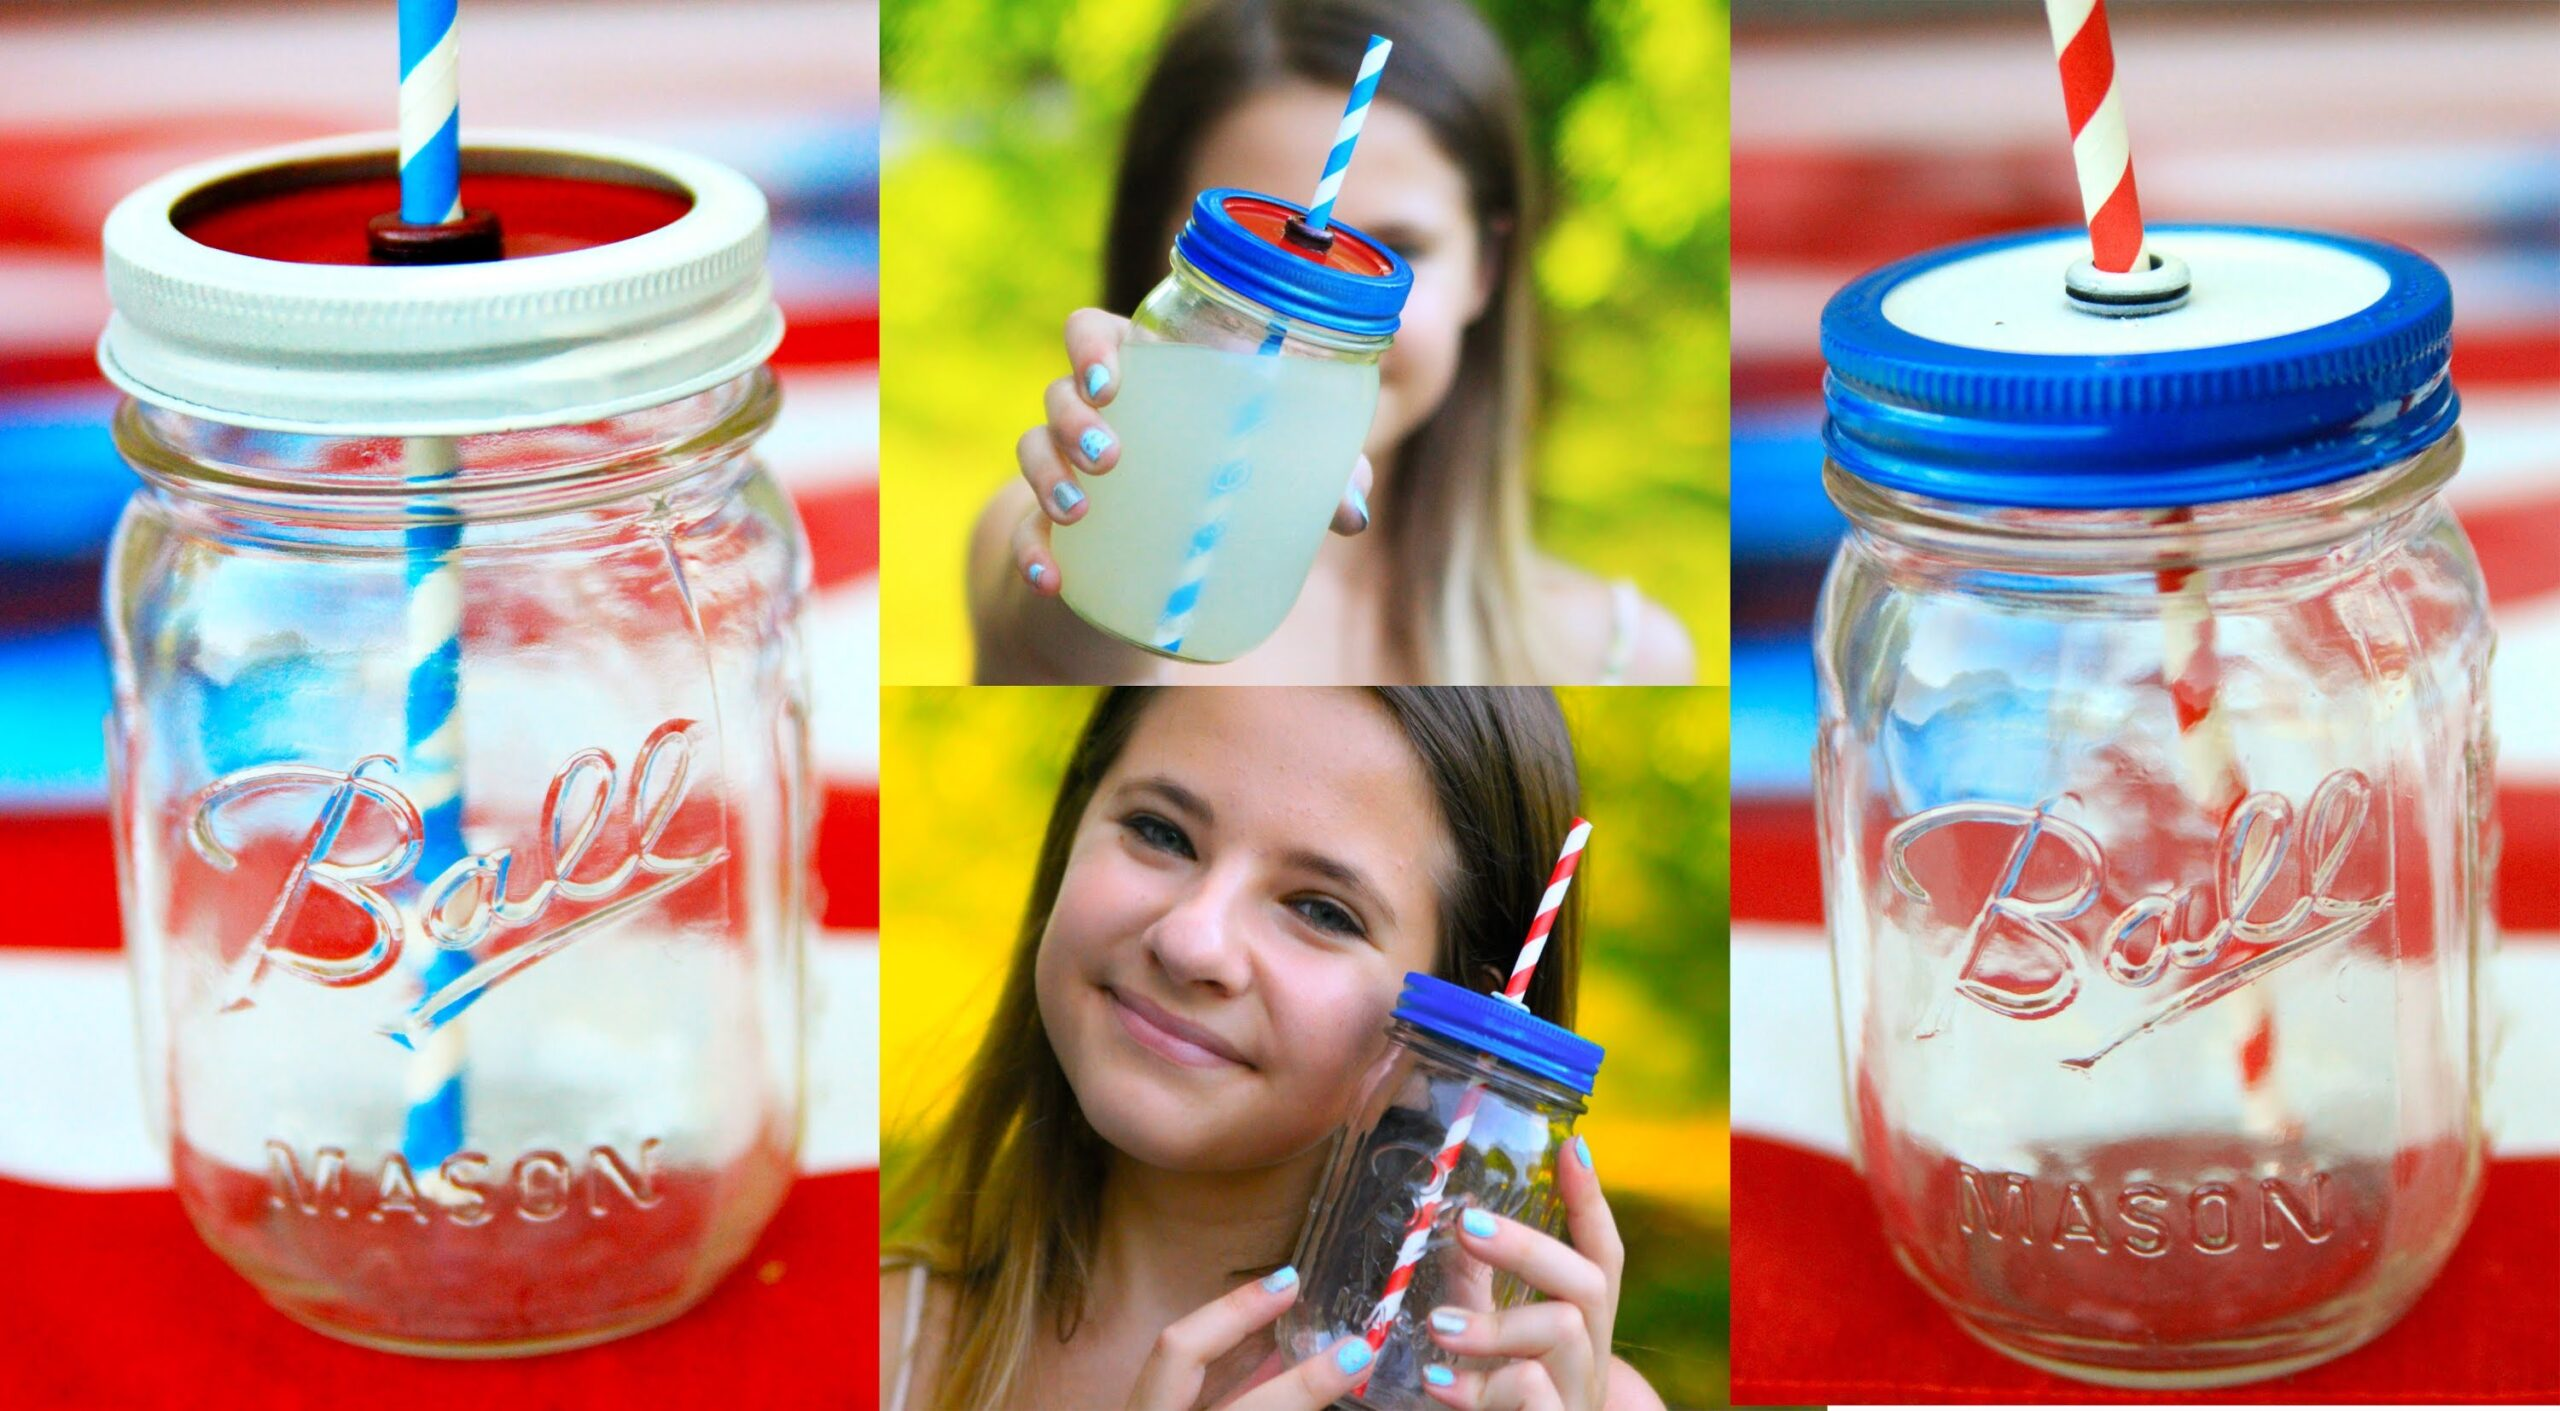 DIY Mason Jar Cups (NO DRILL) 4th of July Edition!